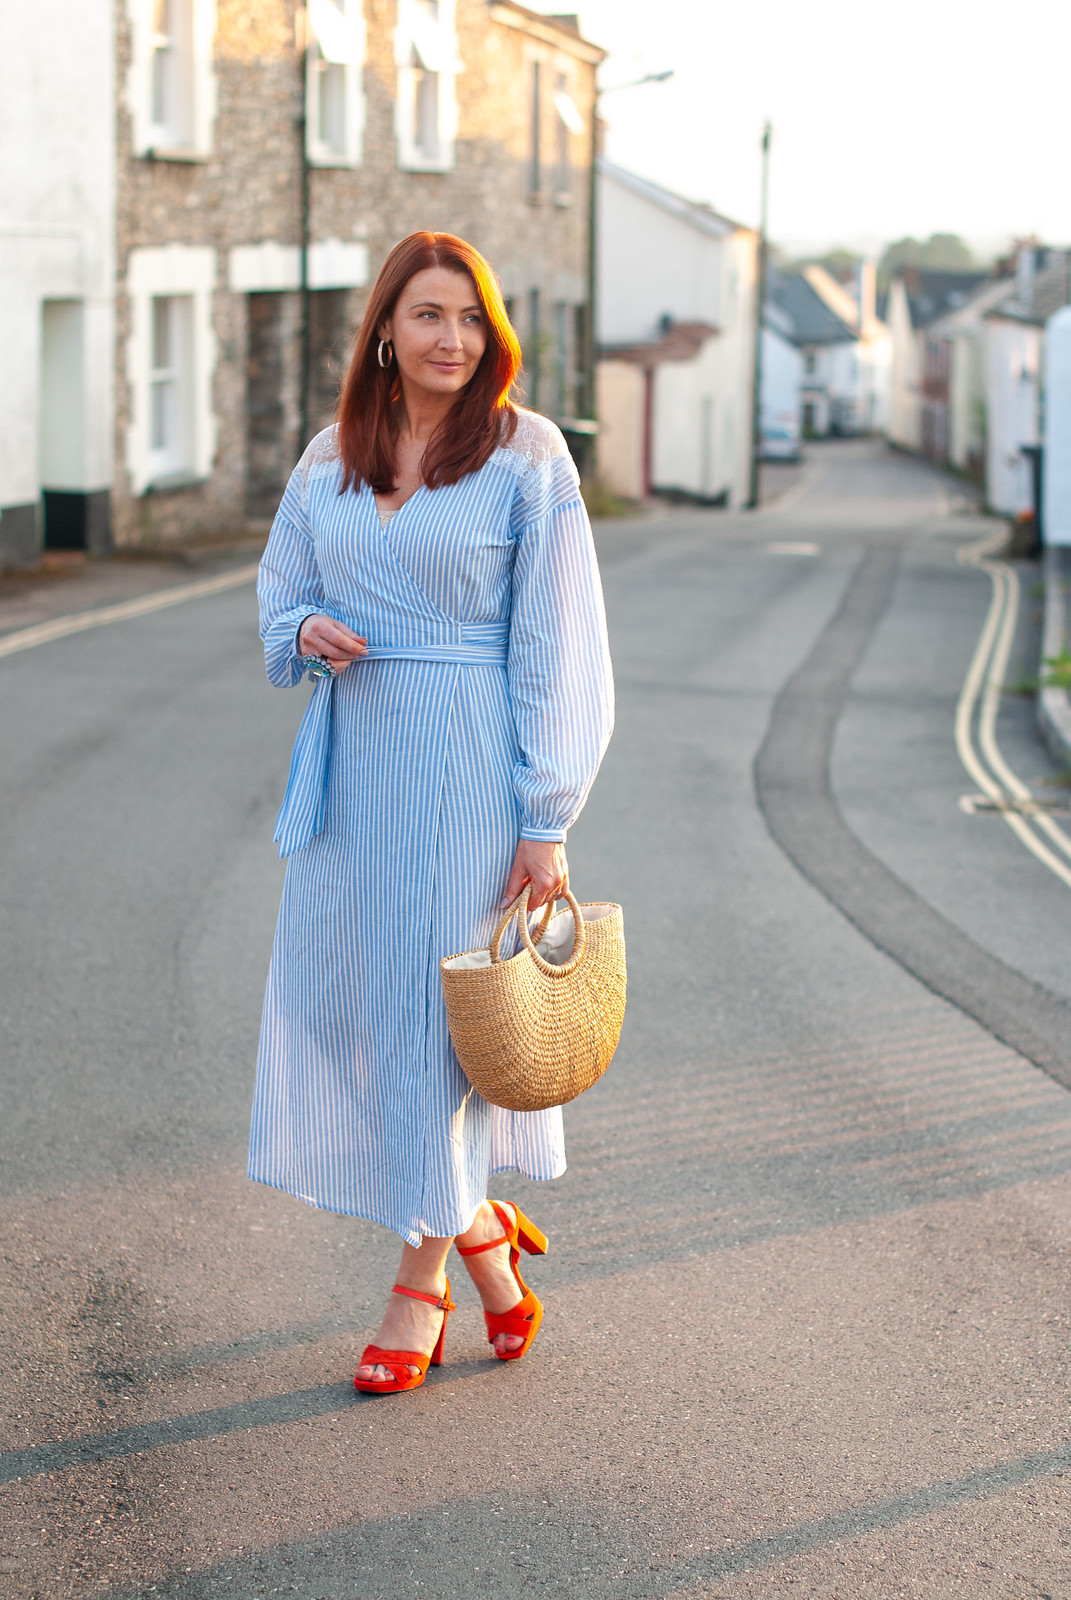 A Classic Summer Outfit of Blue and White Stripe Cotton \ Mango stripe cotton dress with lace panel \ tomato red block heel sandals \ straw basket bag | Not Dressed As Lamb, over 40 style